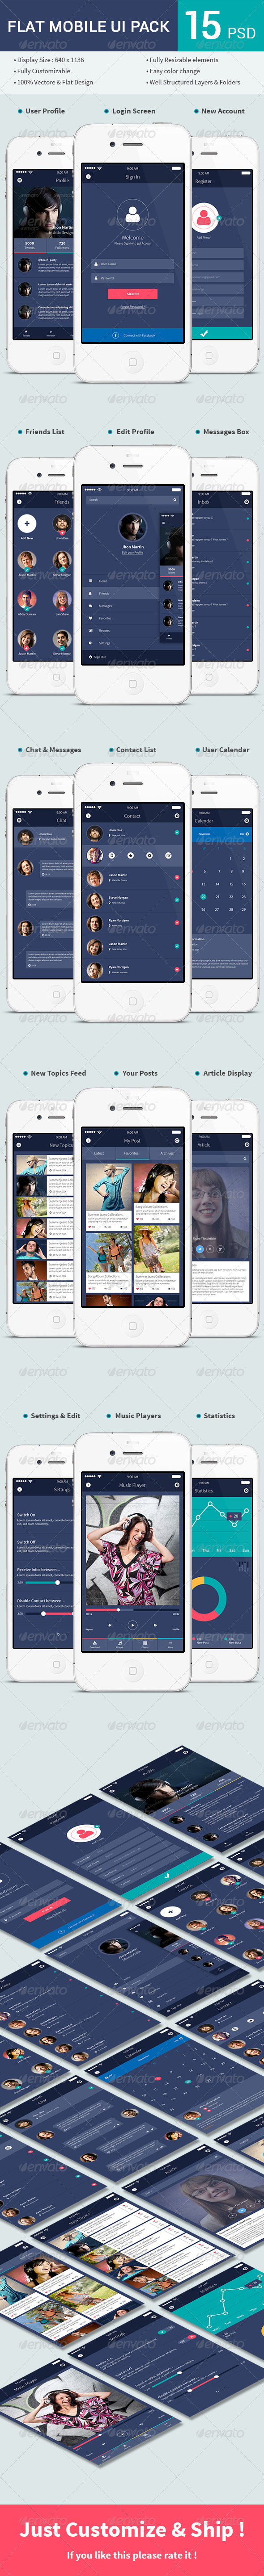 GraphicRiver Flat Mobile UI Pack 7557263